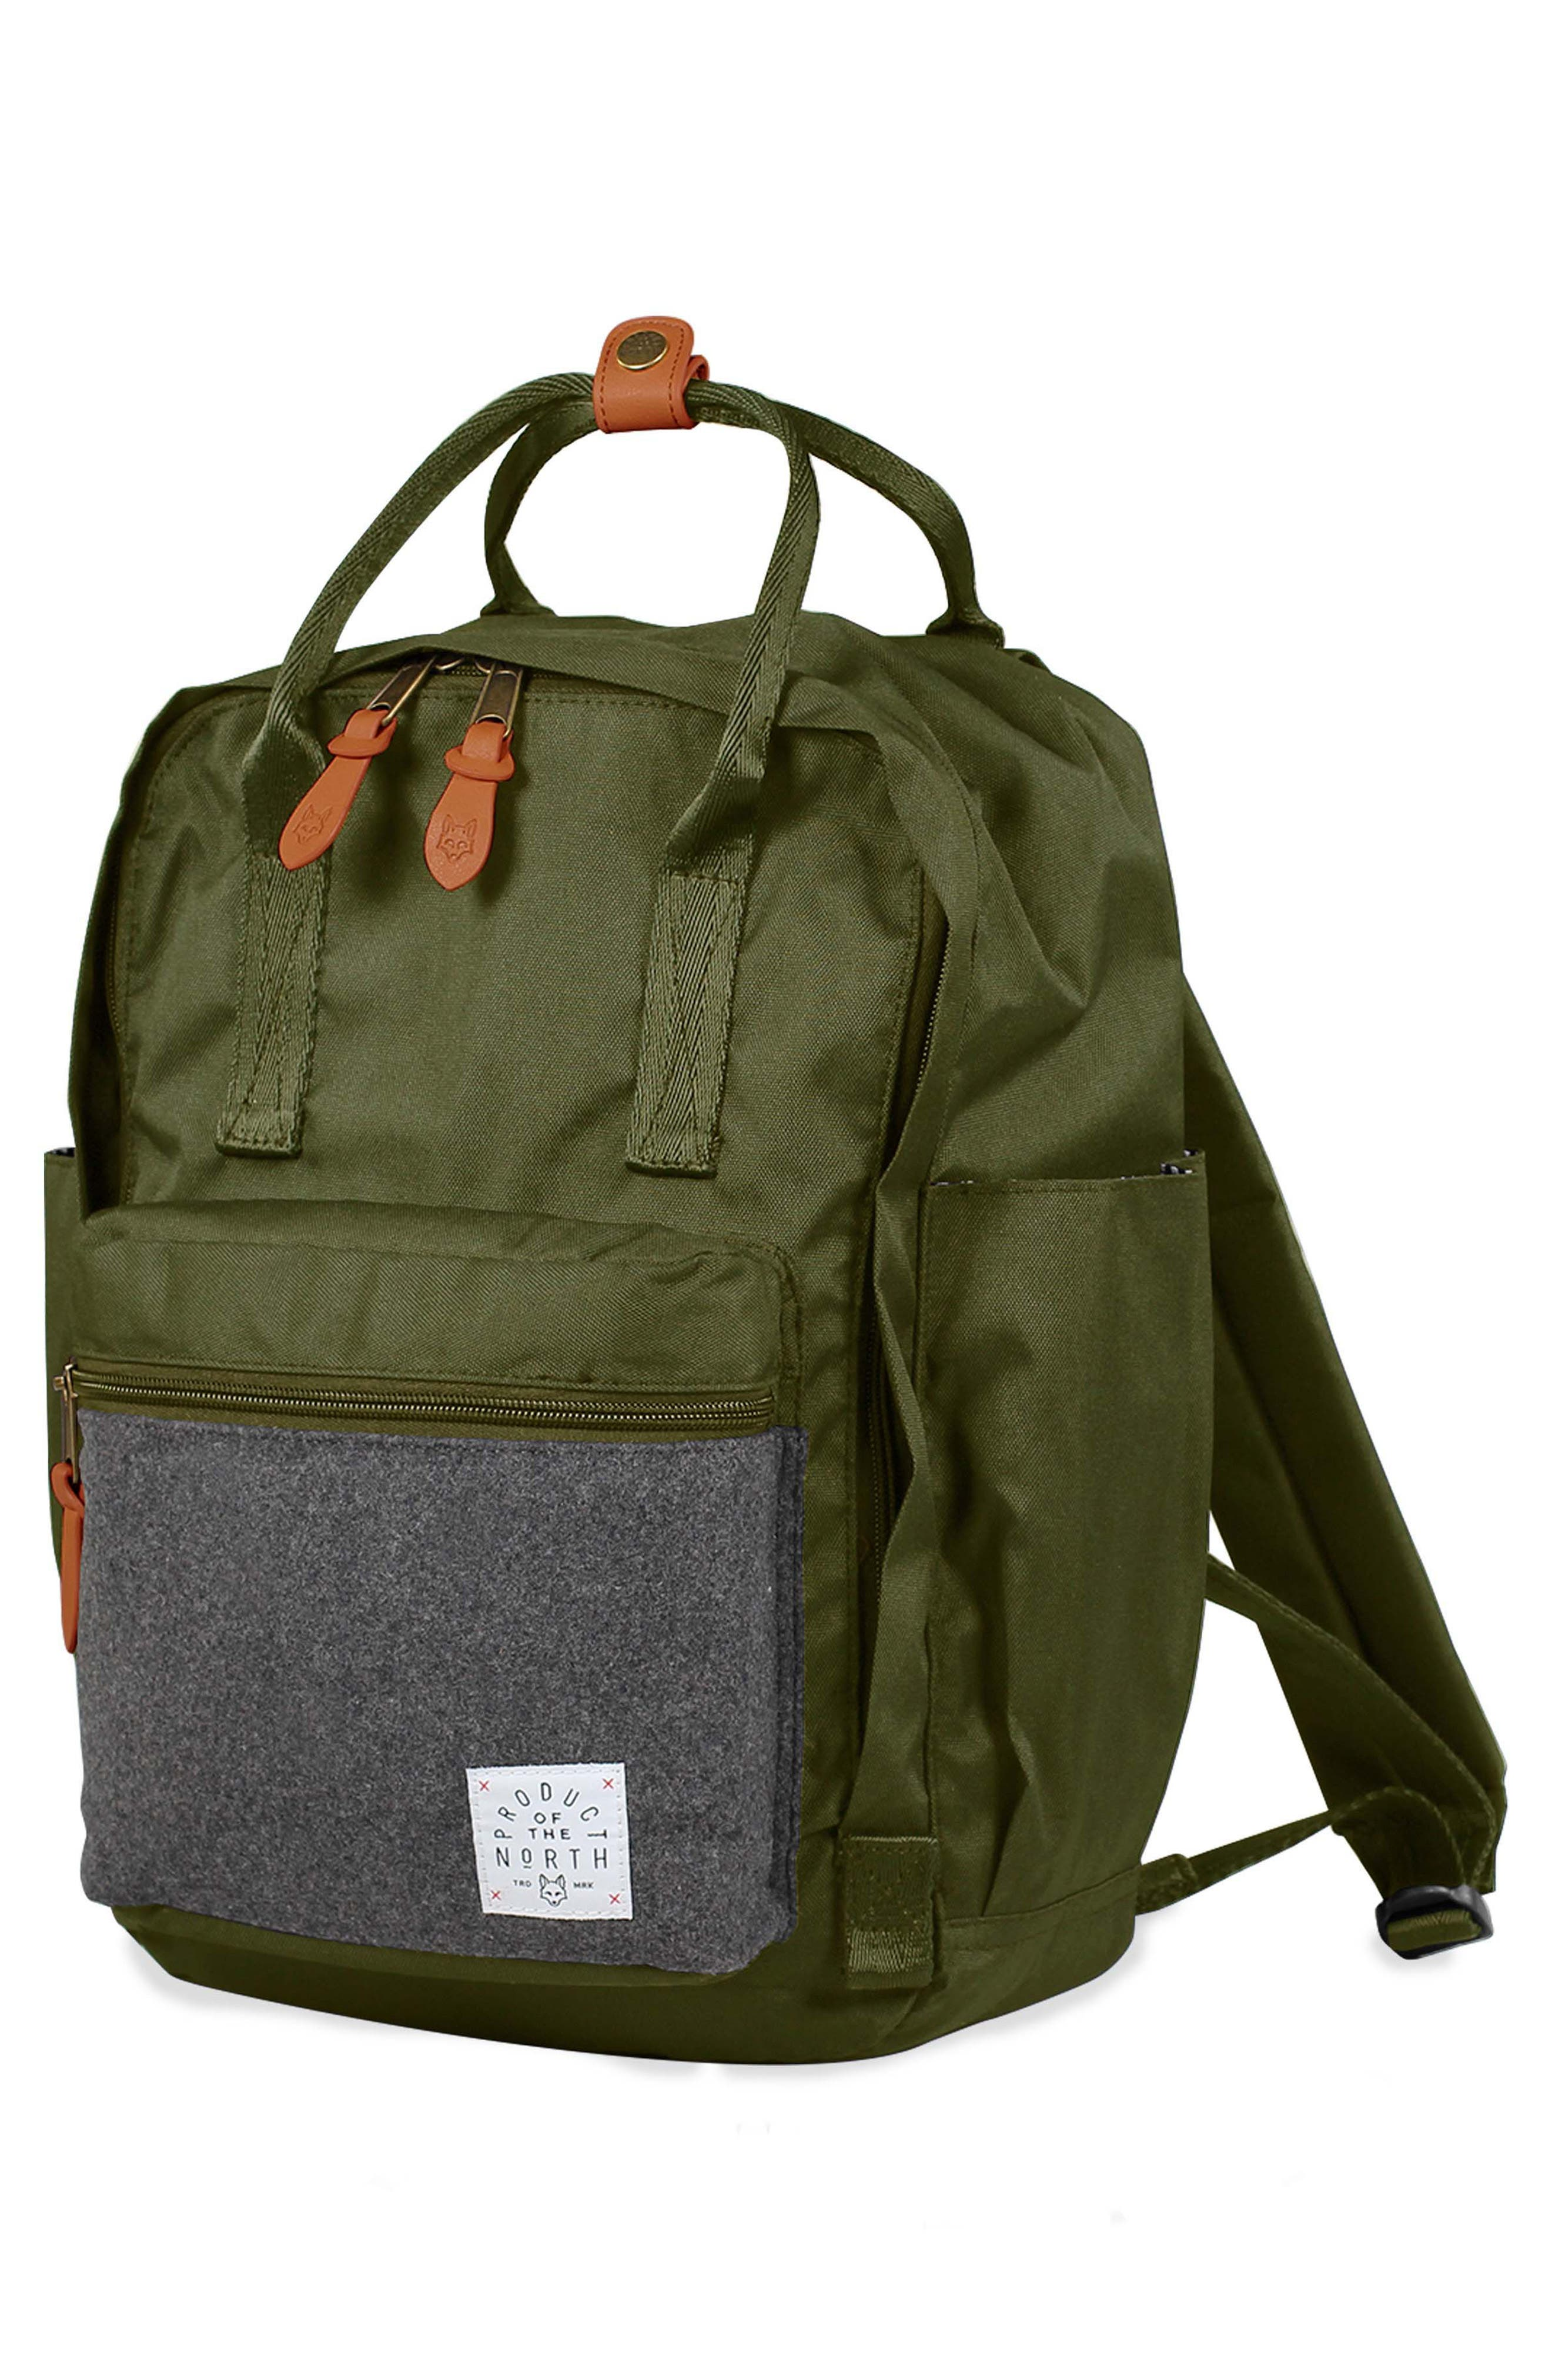 PRODUCT OF THE NORTH,                             Elkin Diaper Backpack,                             Alternate thumbnail 5, color,                             OLIVE